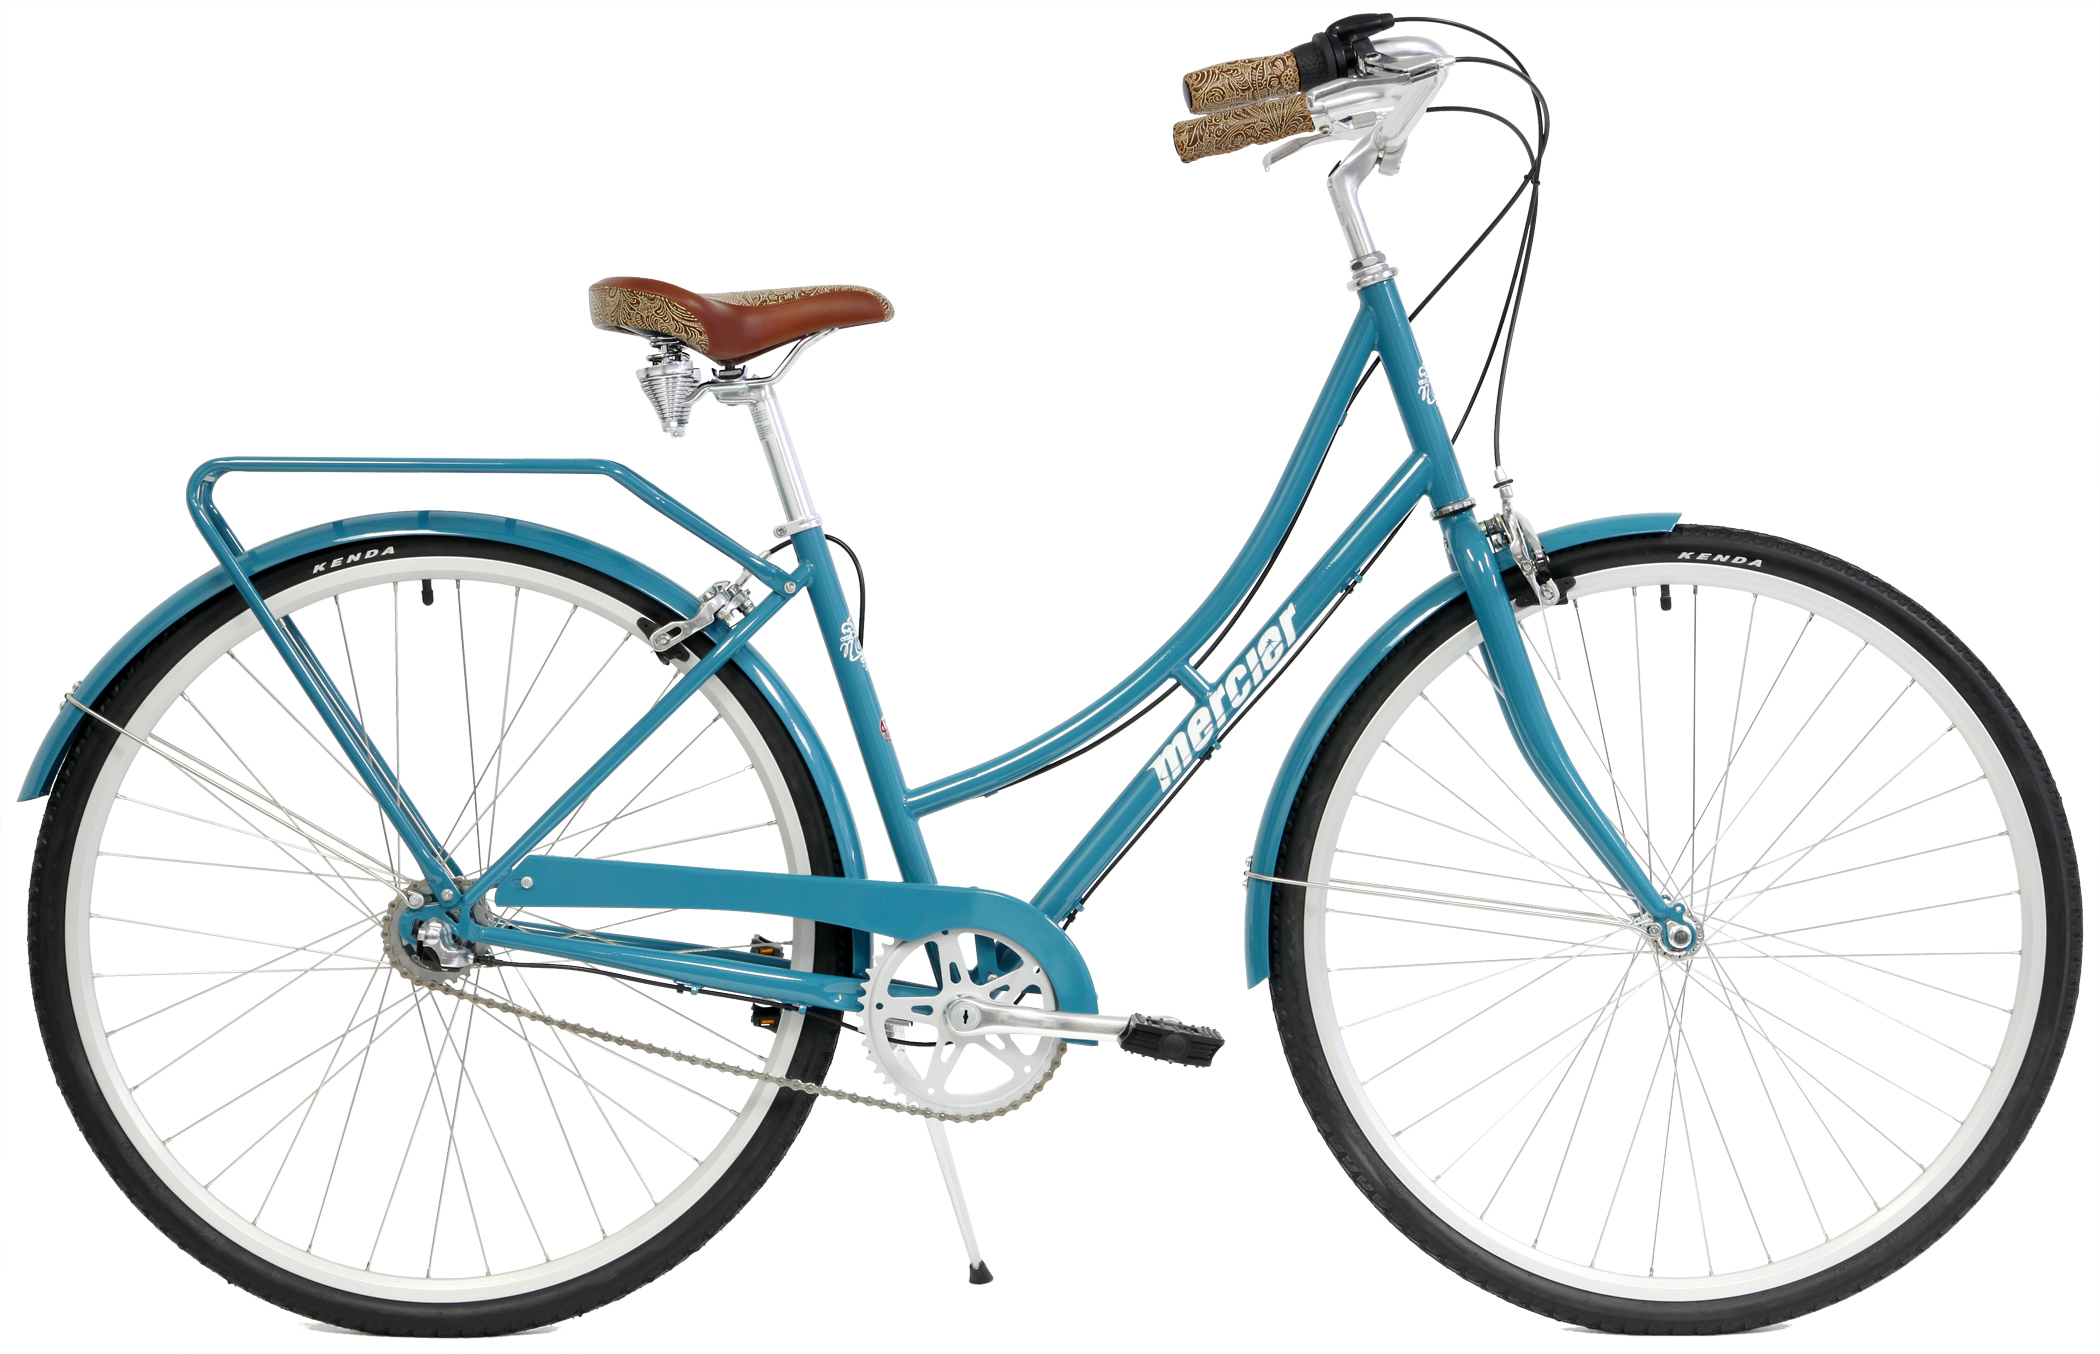 ELLE CITY   - LADIES 3sp COMFORT UTILITY BIKE